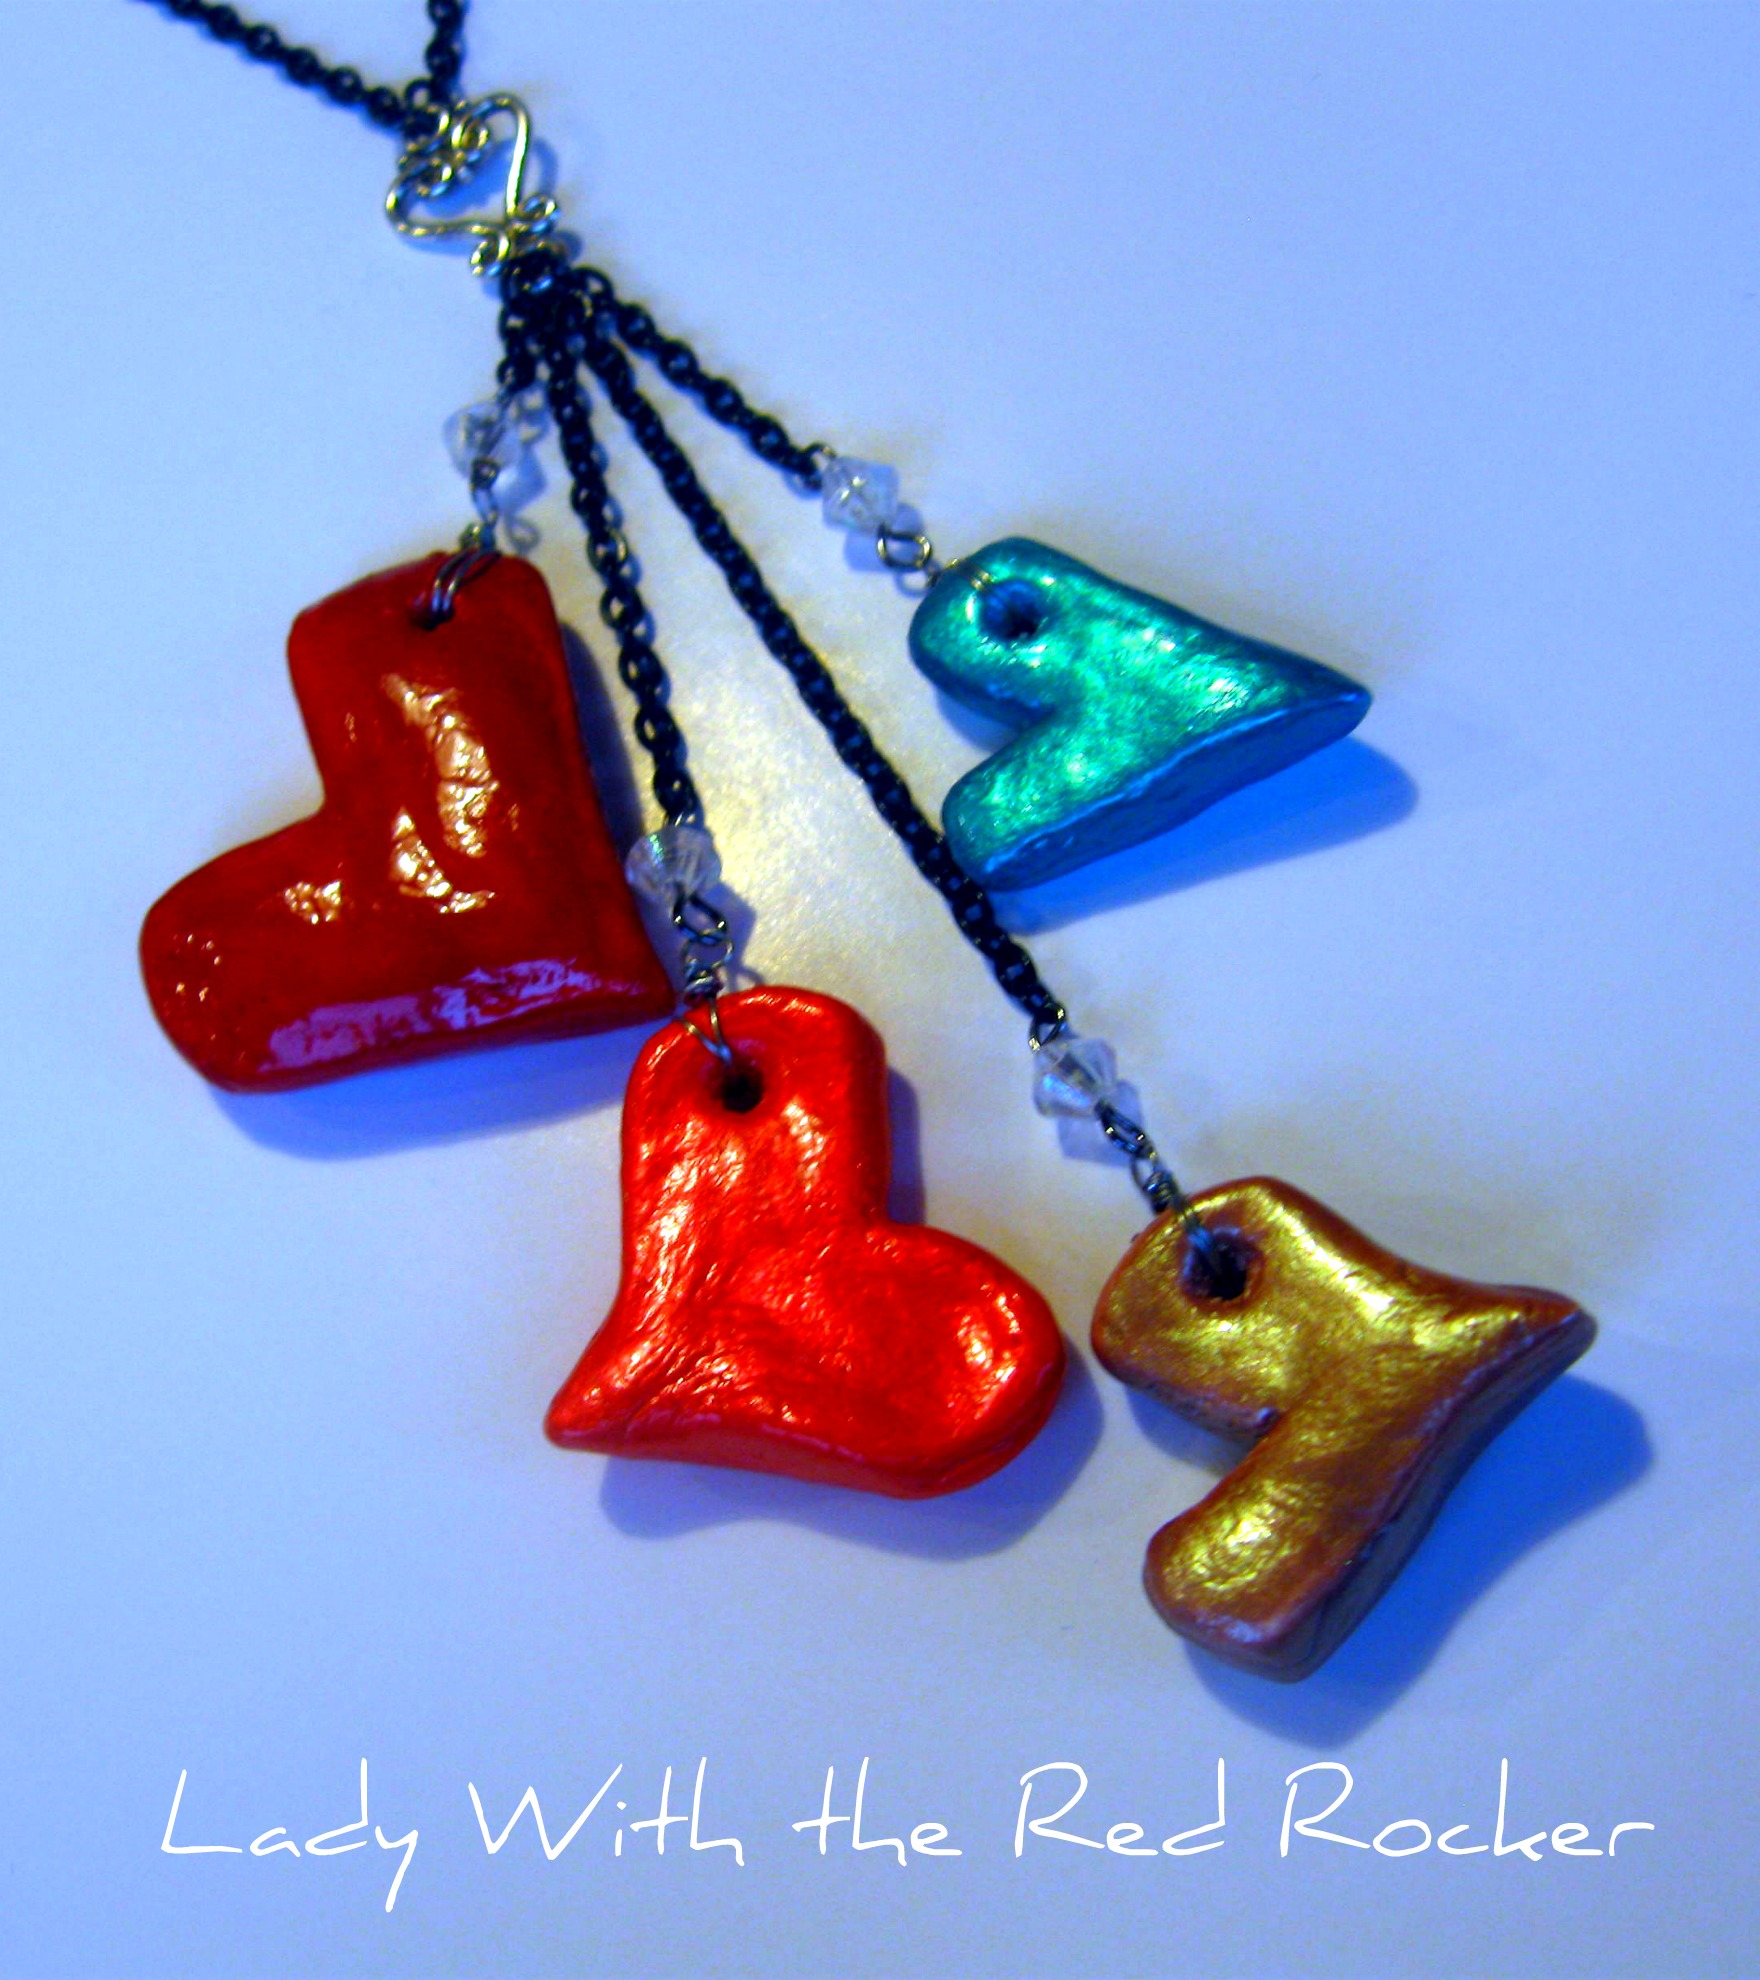 Salt dough heart necklace lady with the red rocker d then i smoothed and continued to form the hearts until i liked how they looked after that i poked a hole in them so i could make my necklace aloadofball Choice Image